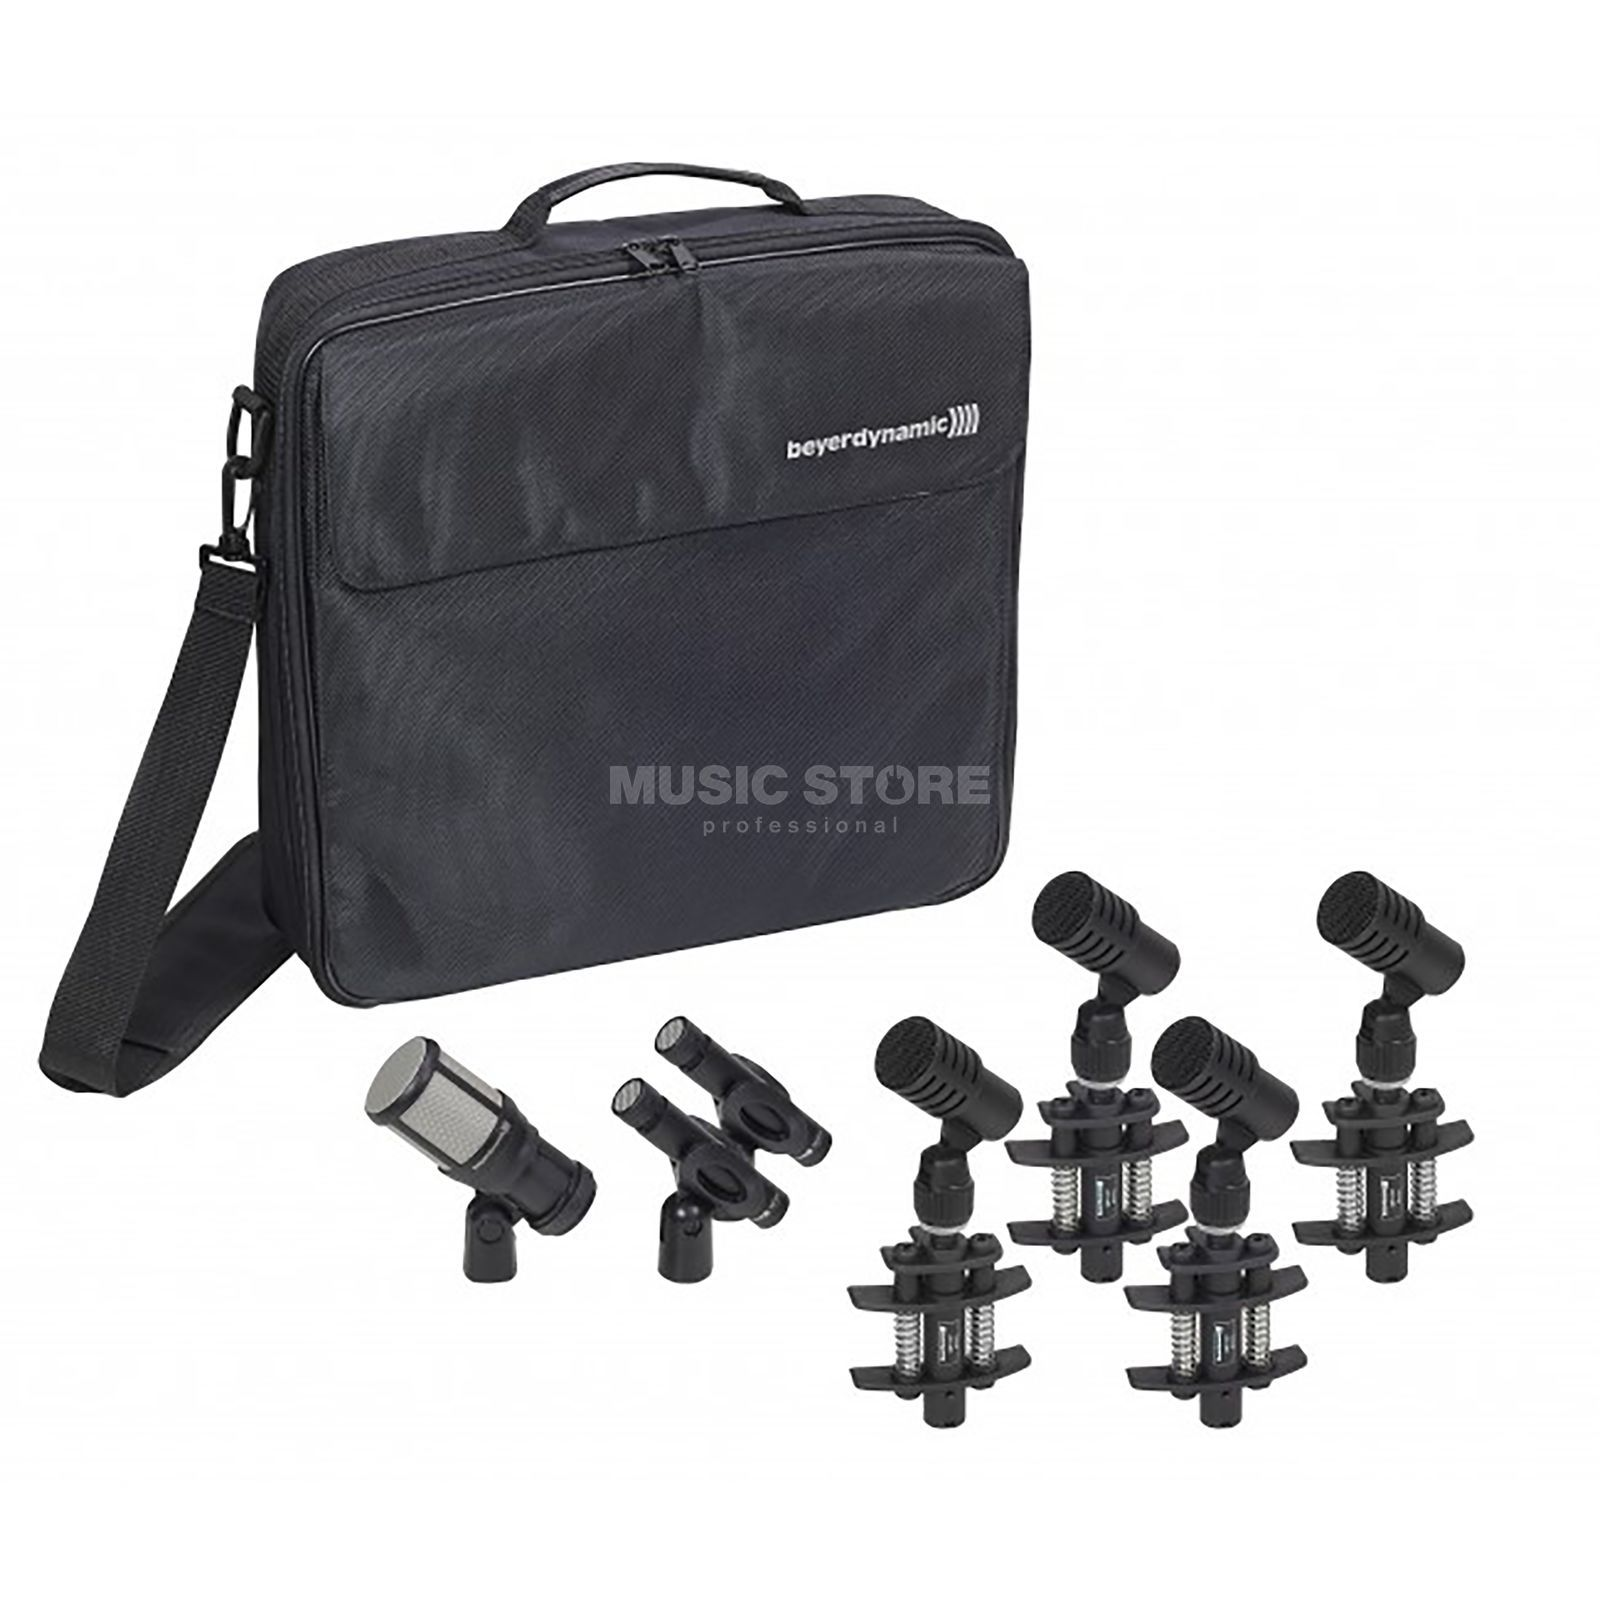 Beyerdynamic TG Drum Set PRO M Drum Mikrofon Set Produktbild